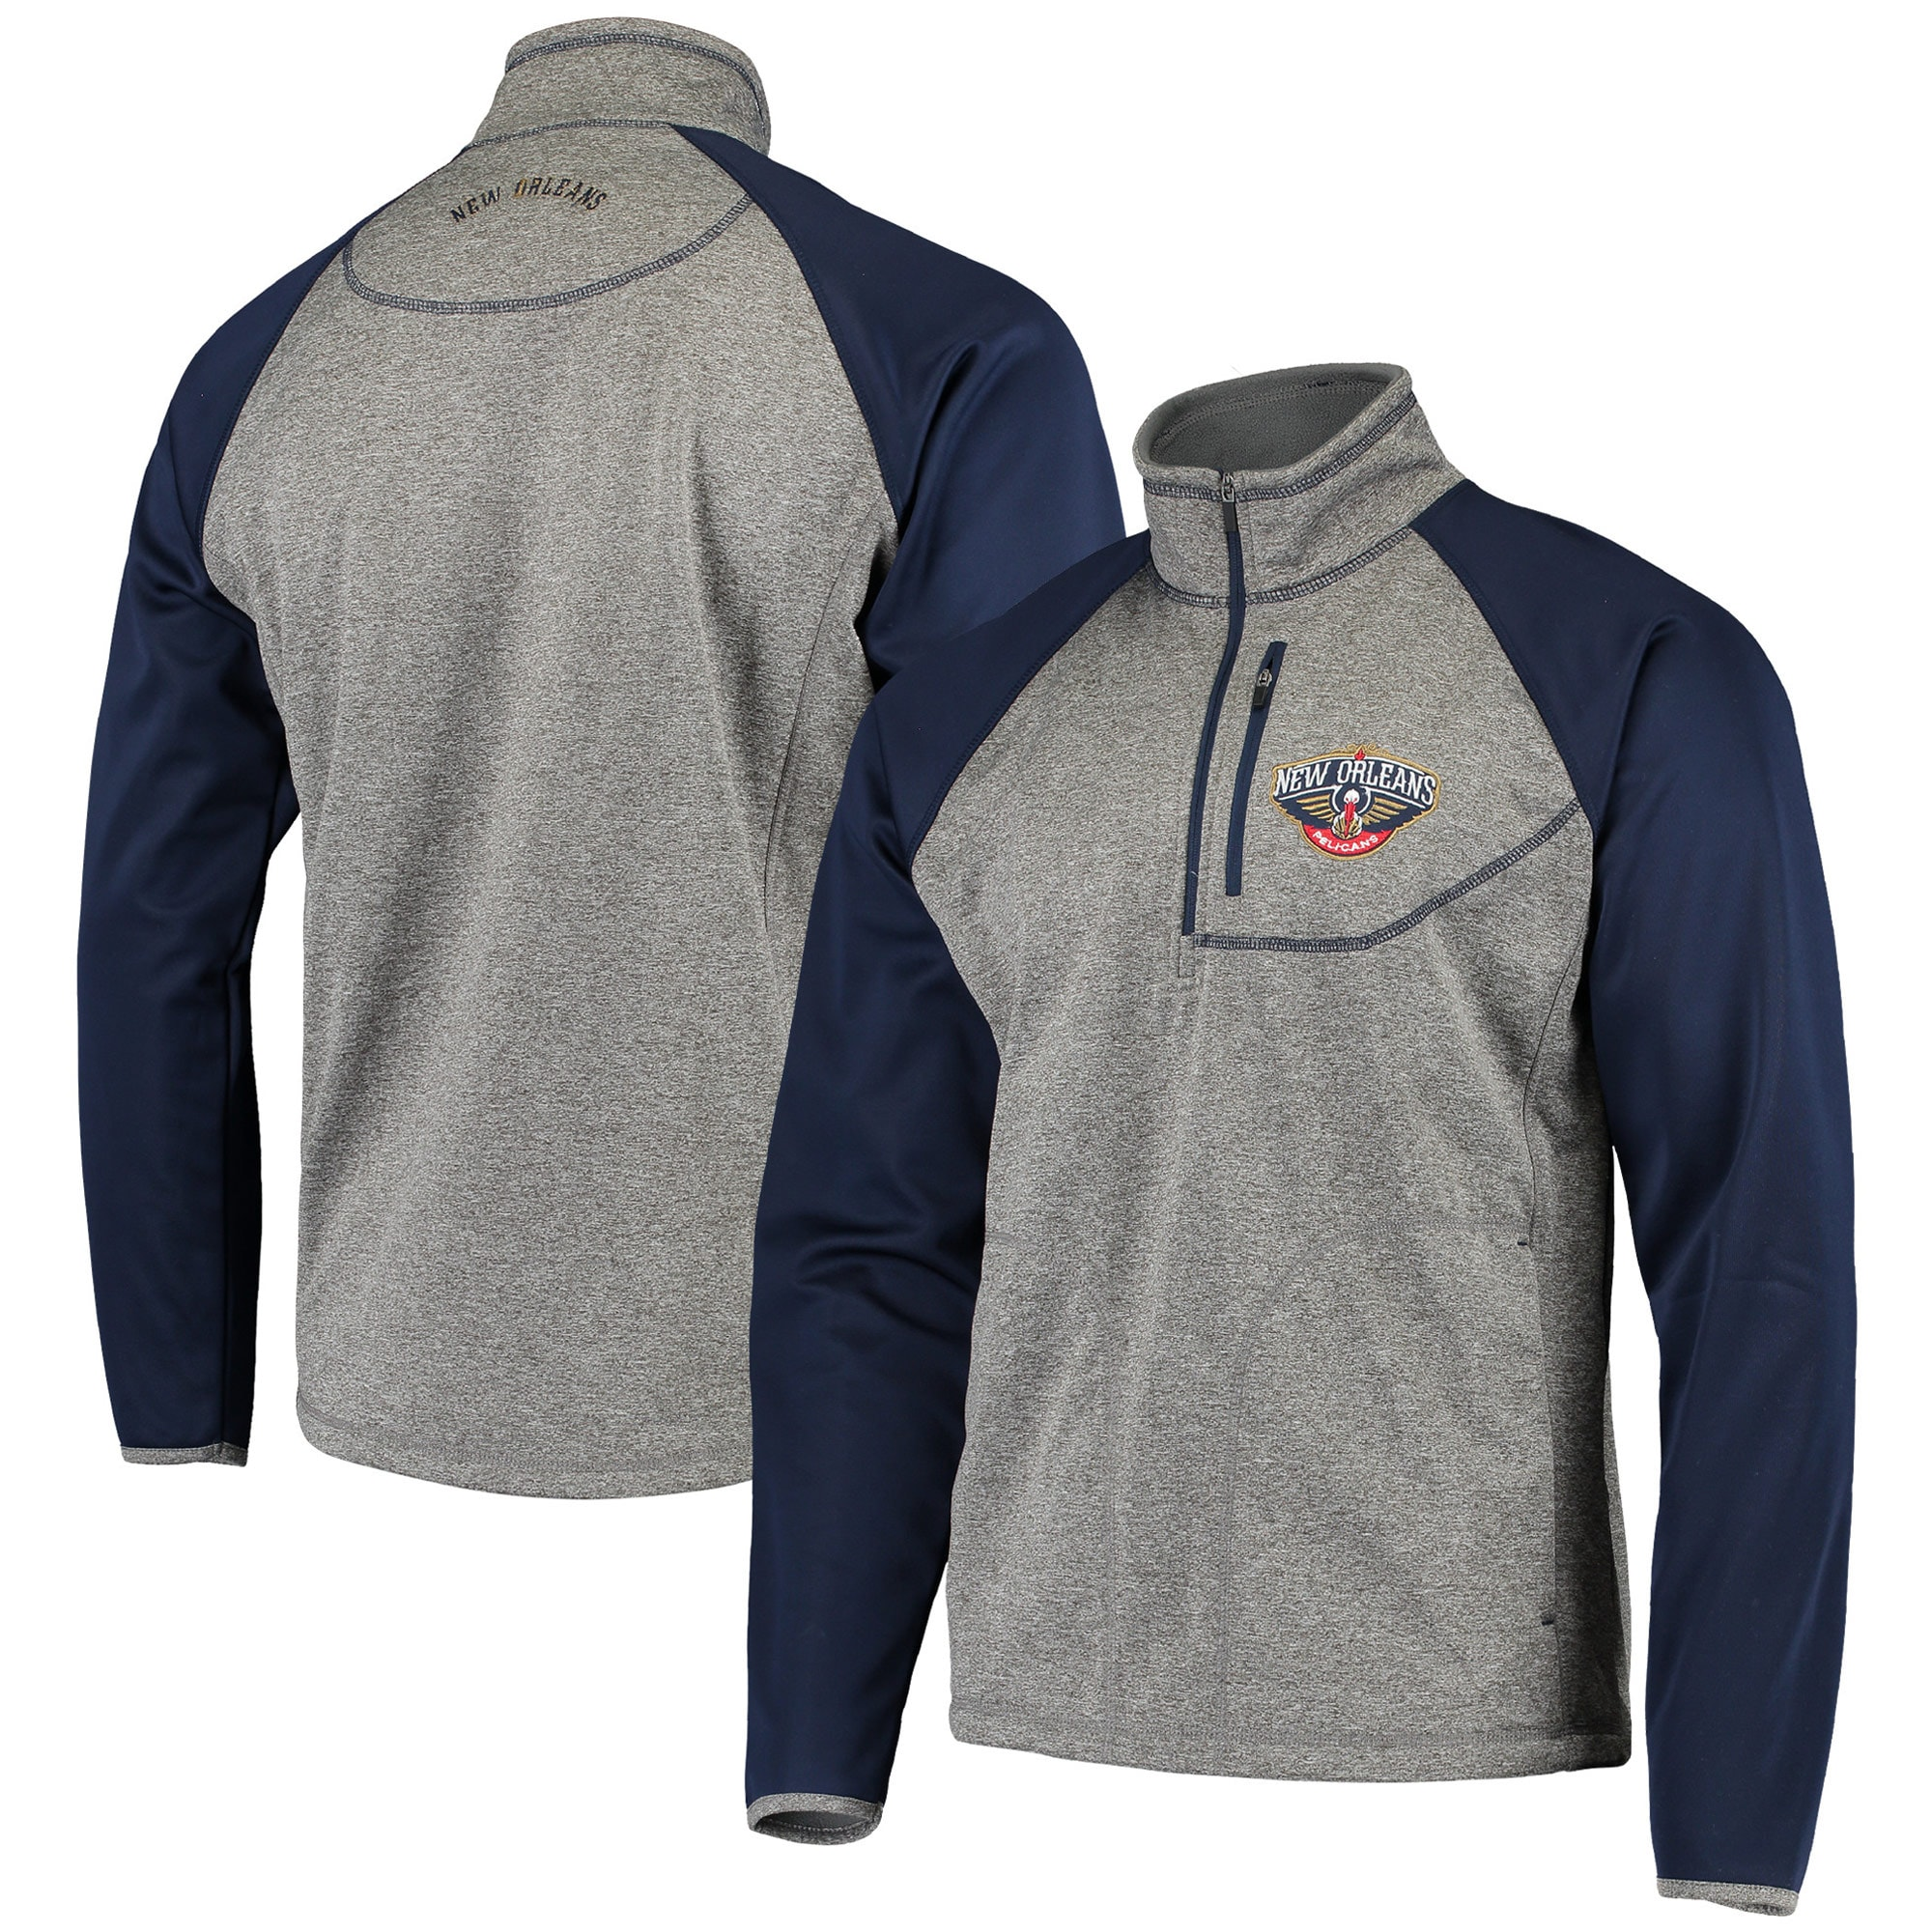 New Orleans Pelicans G-III Sports by Carl Banks Mountain Trail Half-Zip Pullover Jacket - Gray/Navy